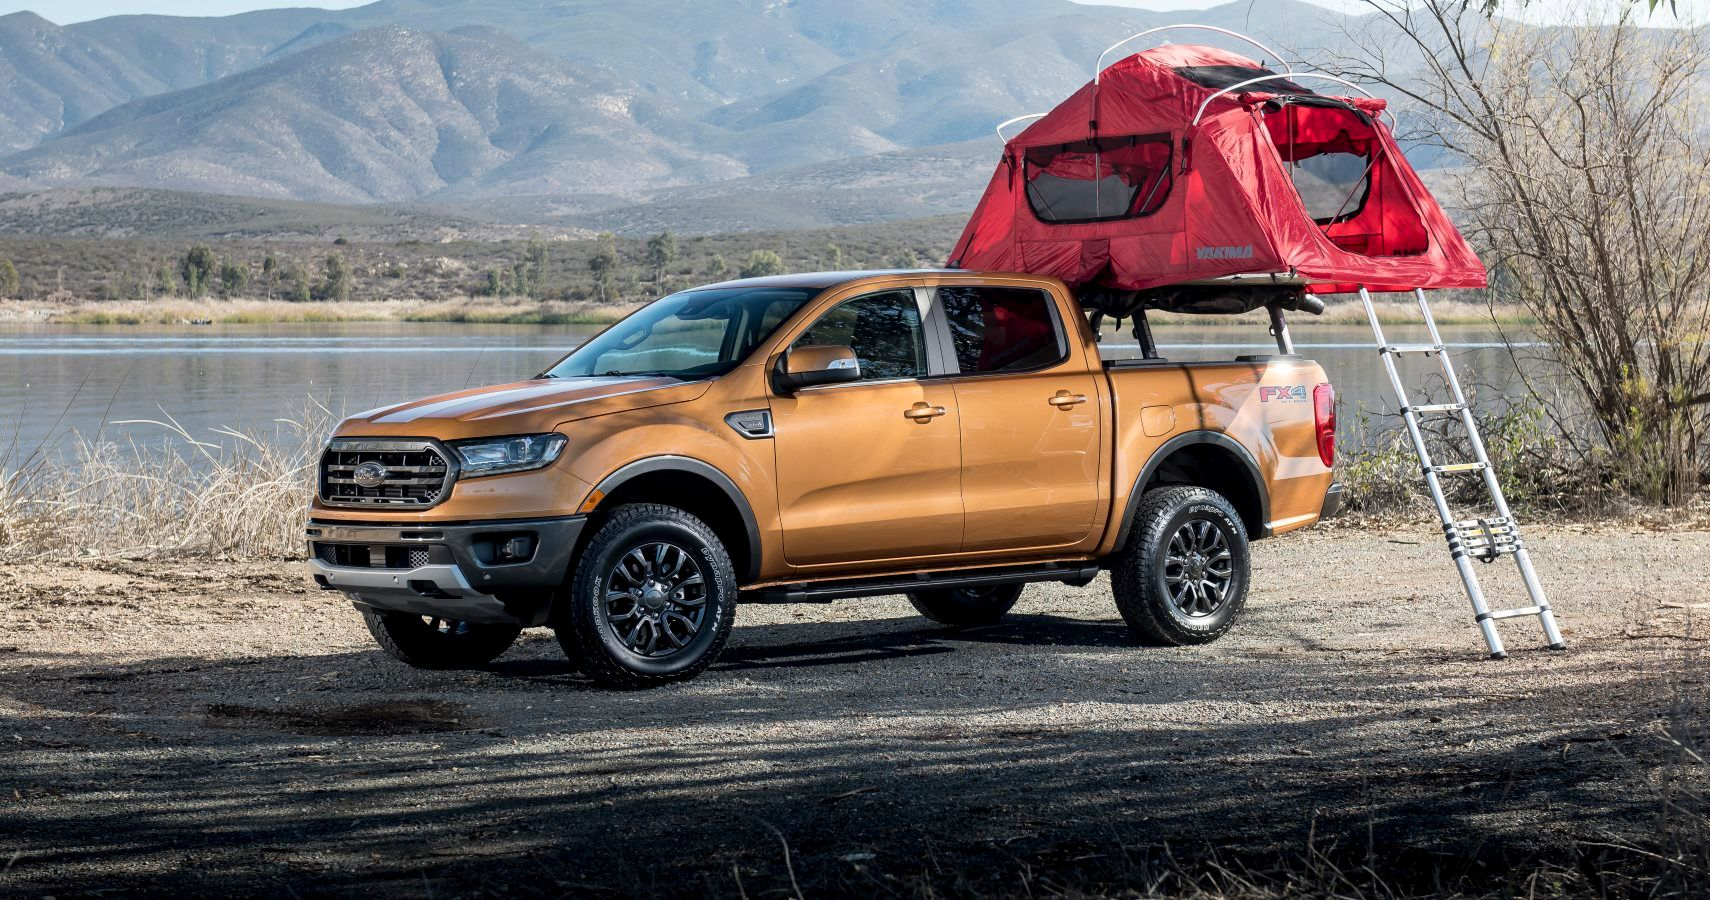 ford ranger image possibly leaked  australia hotcars